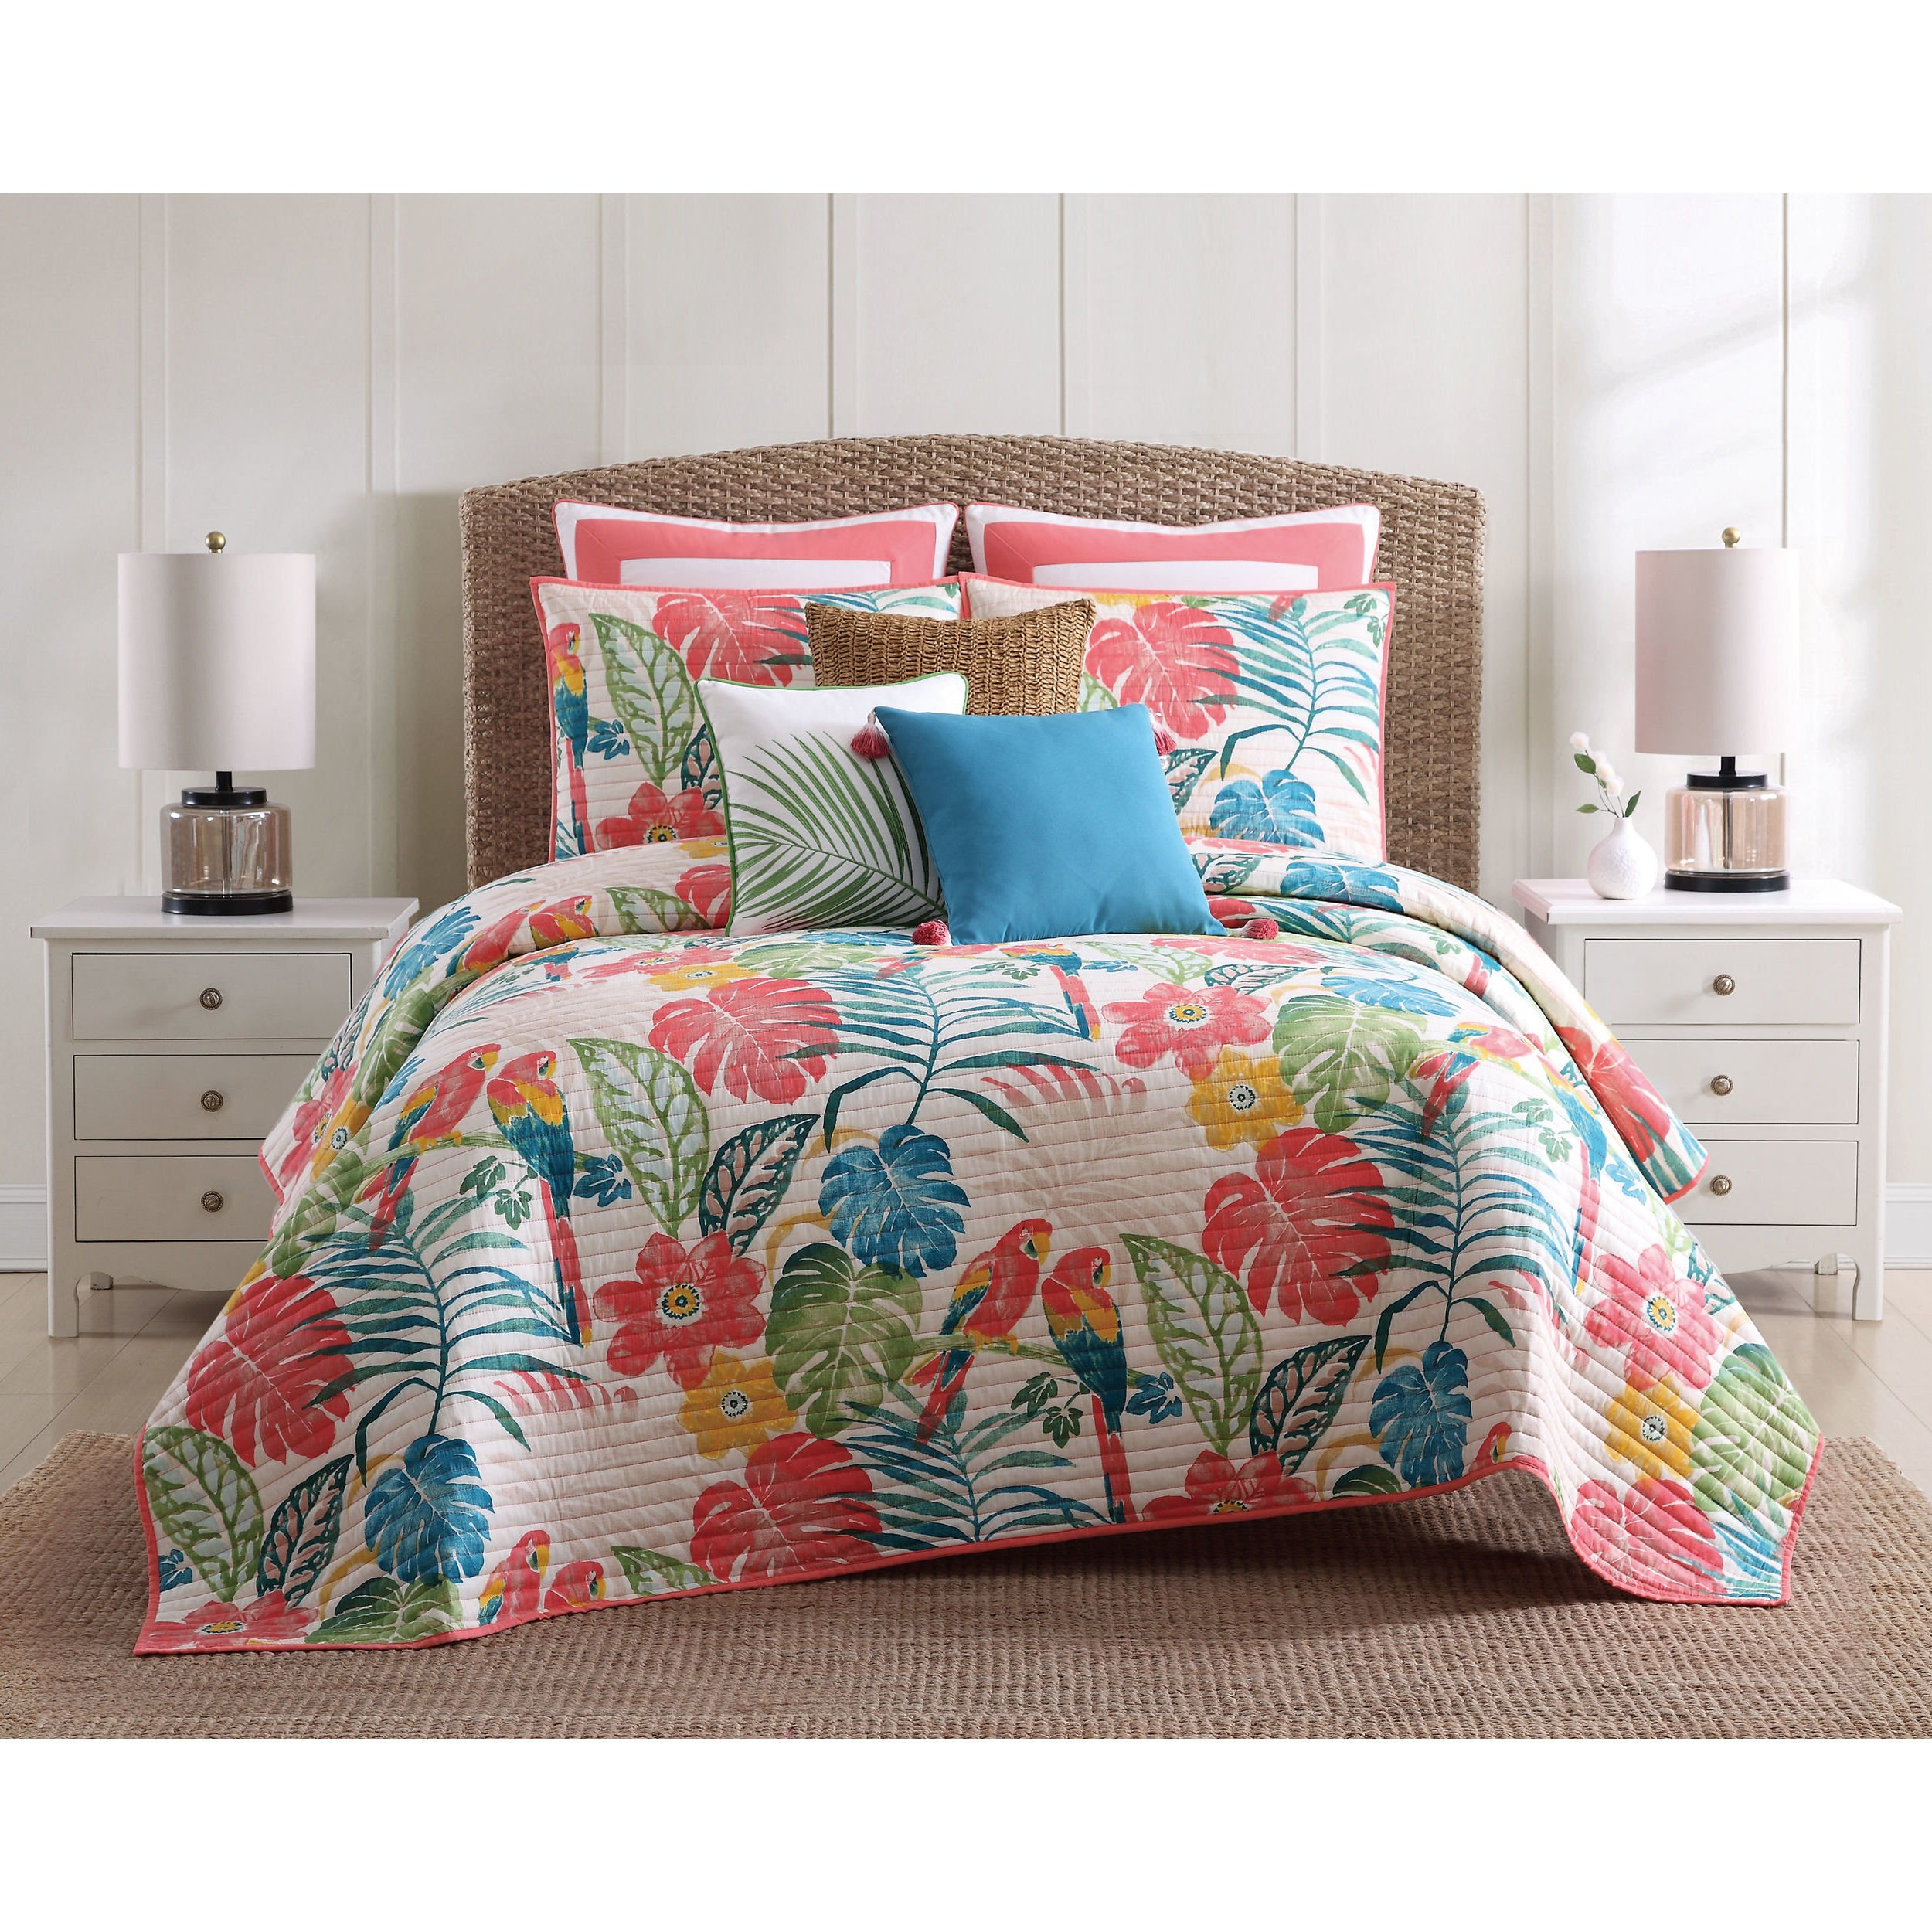 3 Piece Girls Colorful Tropical Quilt Full Queen Set, All Over Floral Parrot Tropics Bedding, Bright Vibrant Multi Color Flower Parrots Tropic Bird Themed Pattern Cotton, Pink Blue Green Yellow White